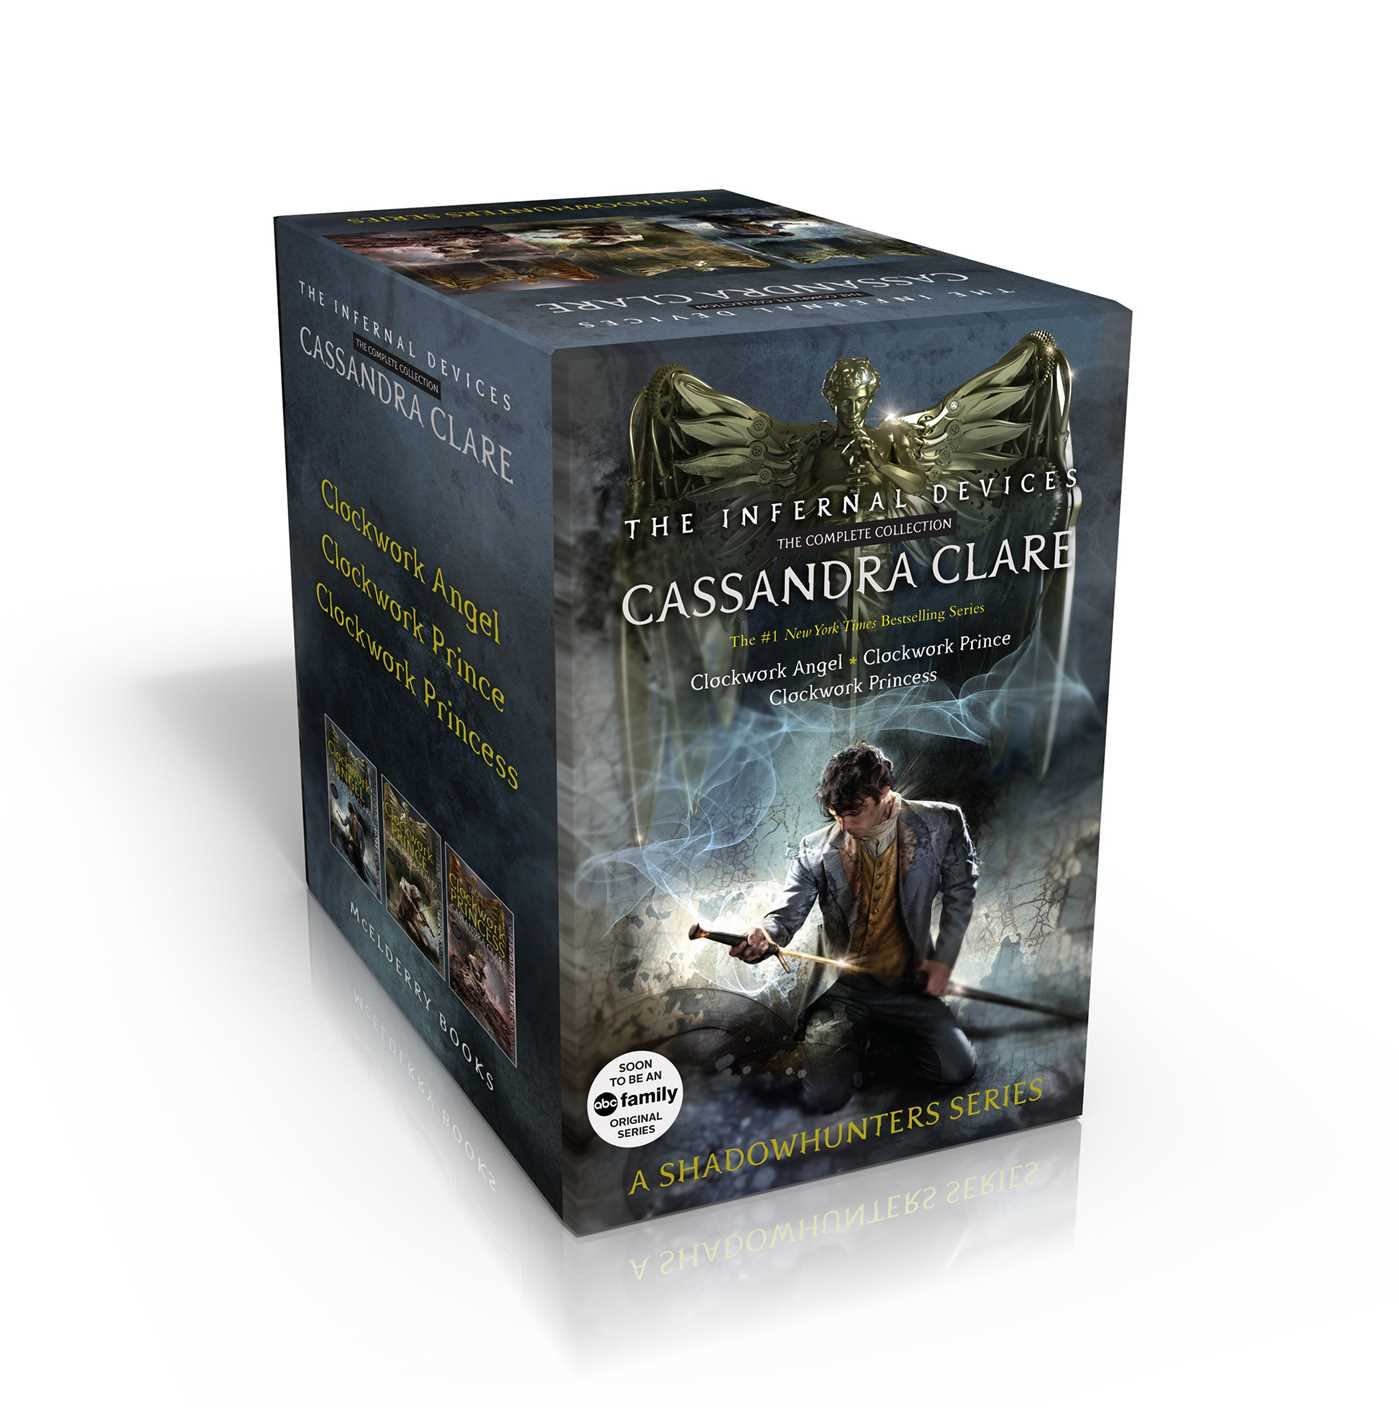 INFERNAL DEVICES, THE COM PLETE COLLECTION, THE